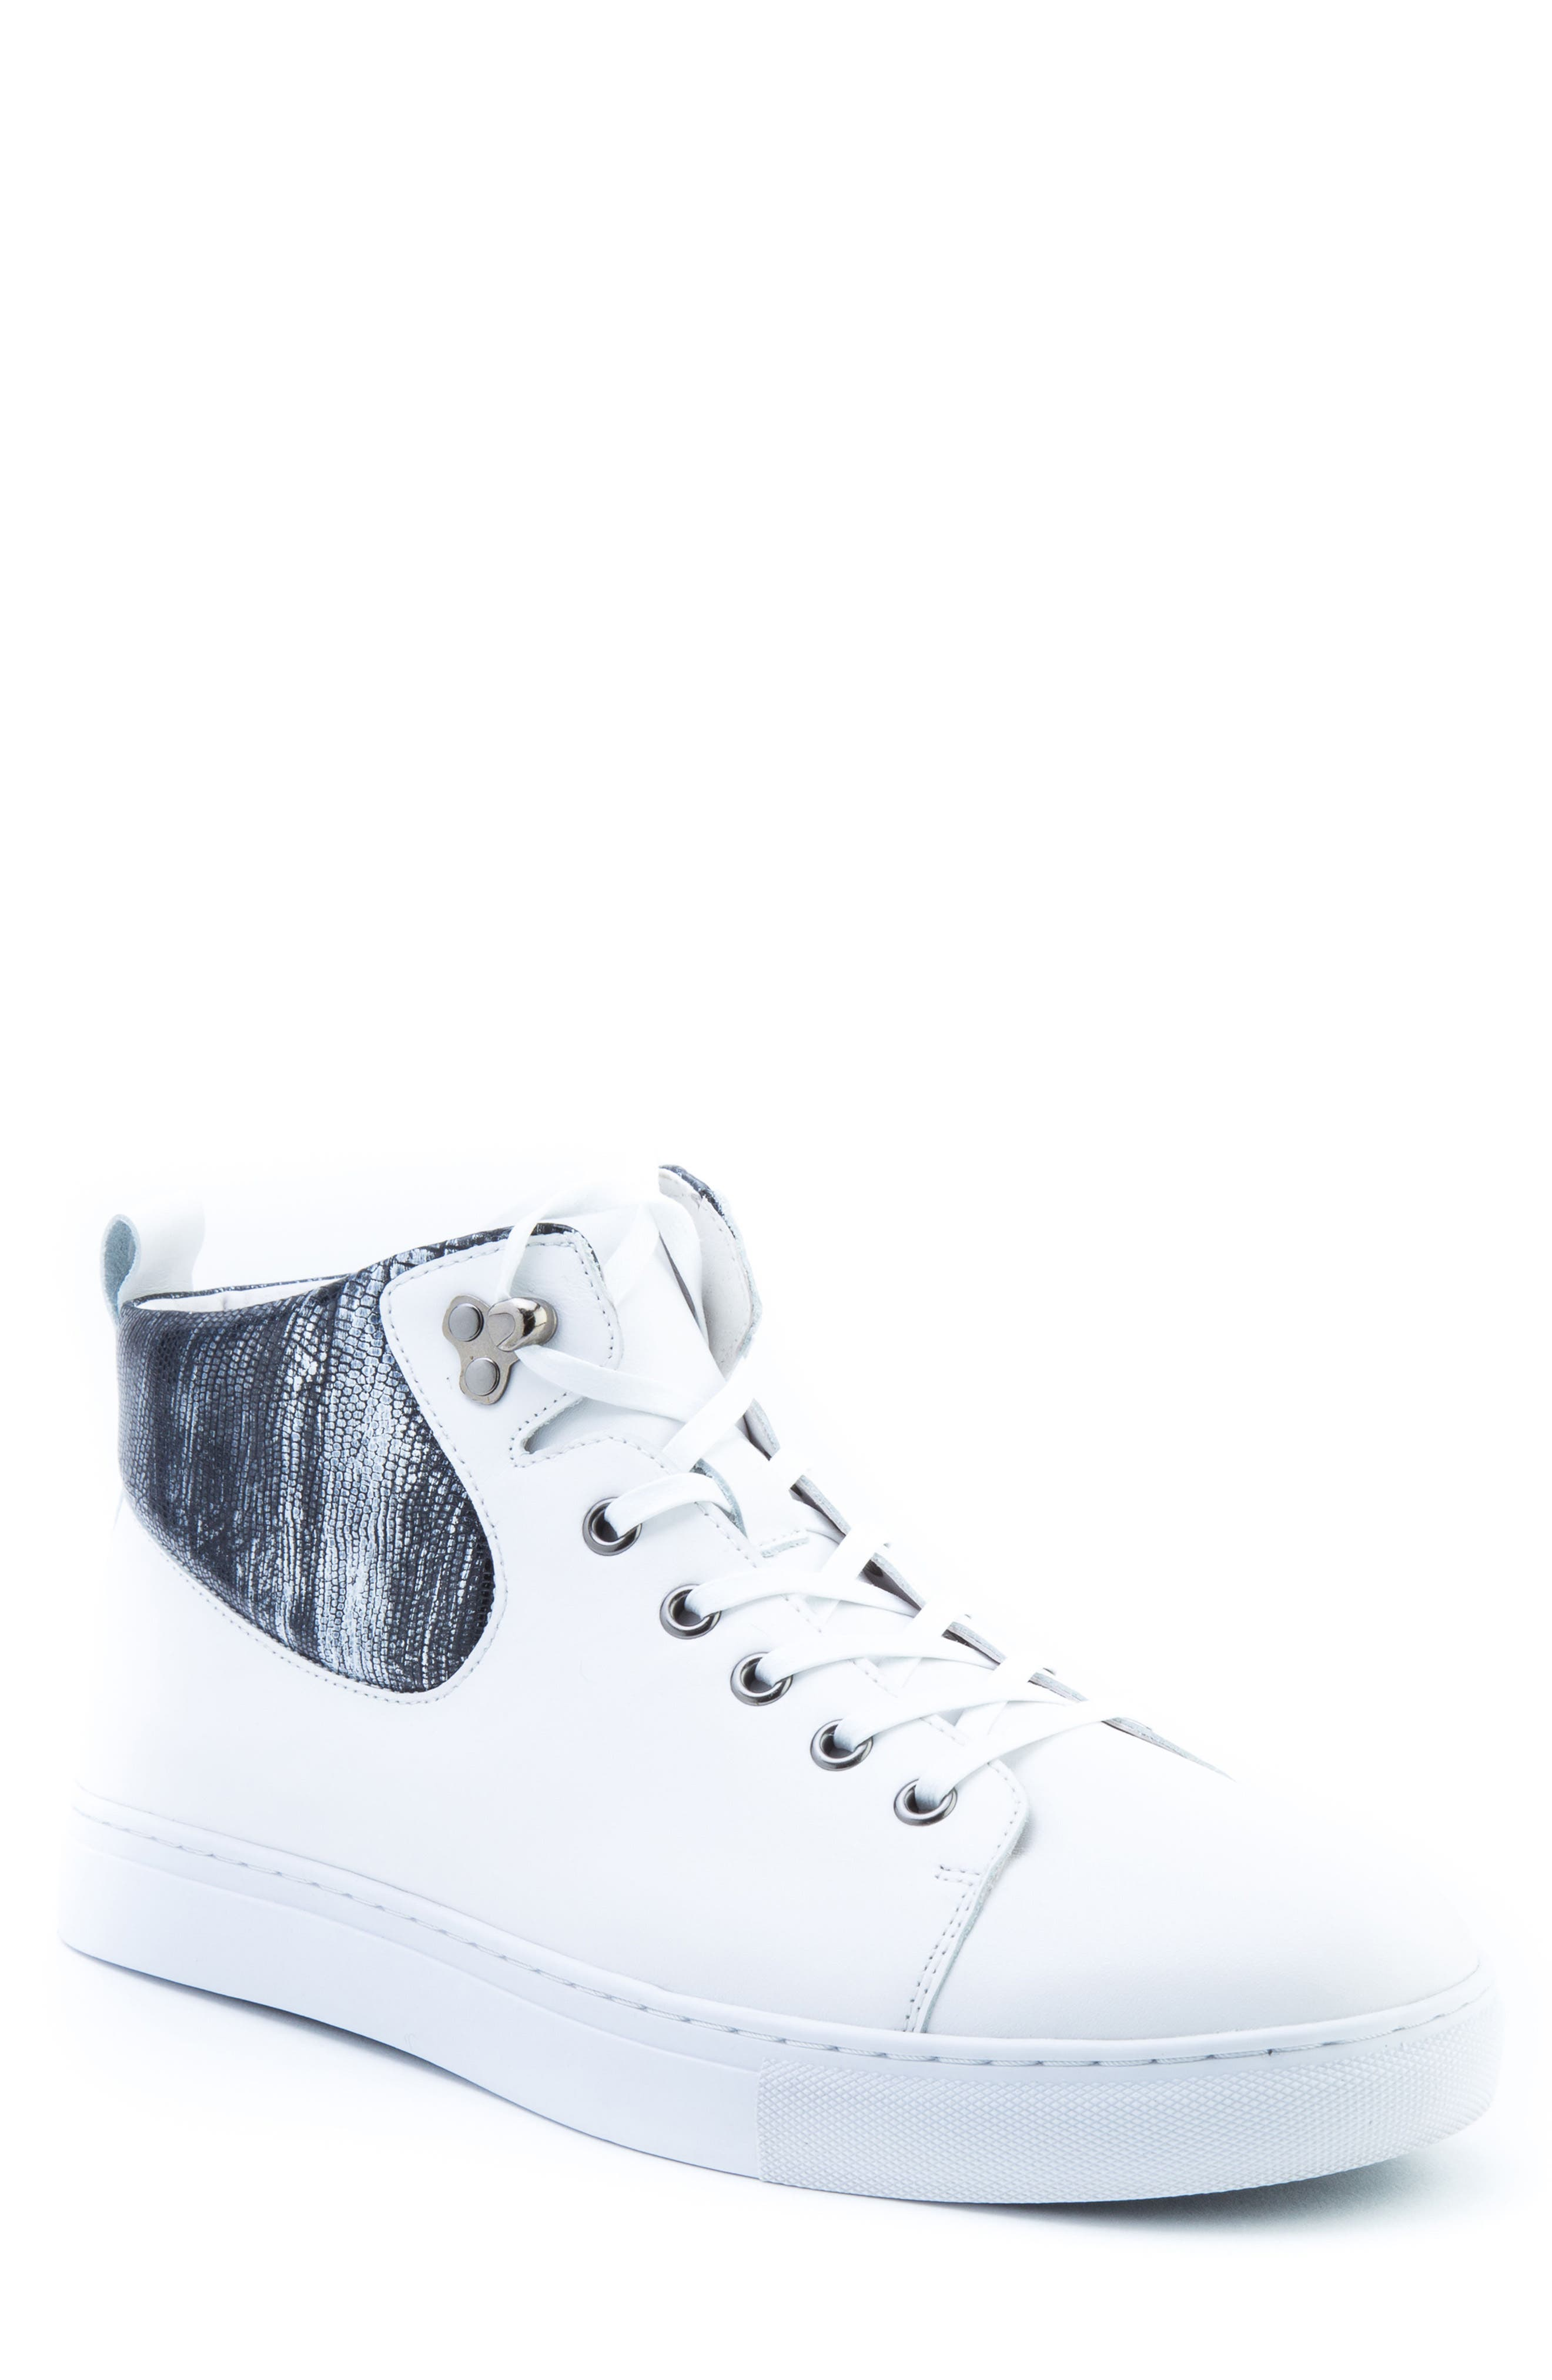 Carroll Sneaker,                         Main,                         color, White Leather